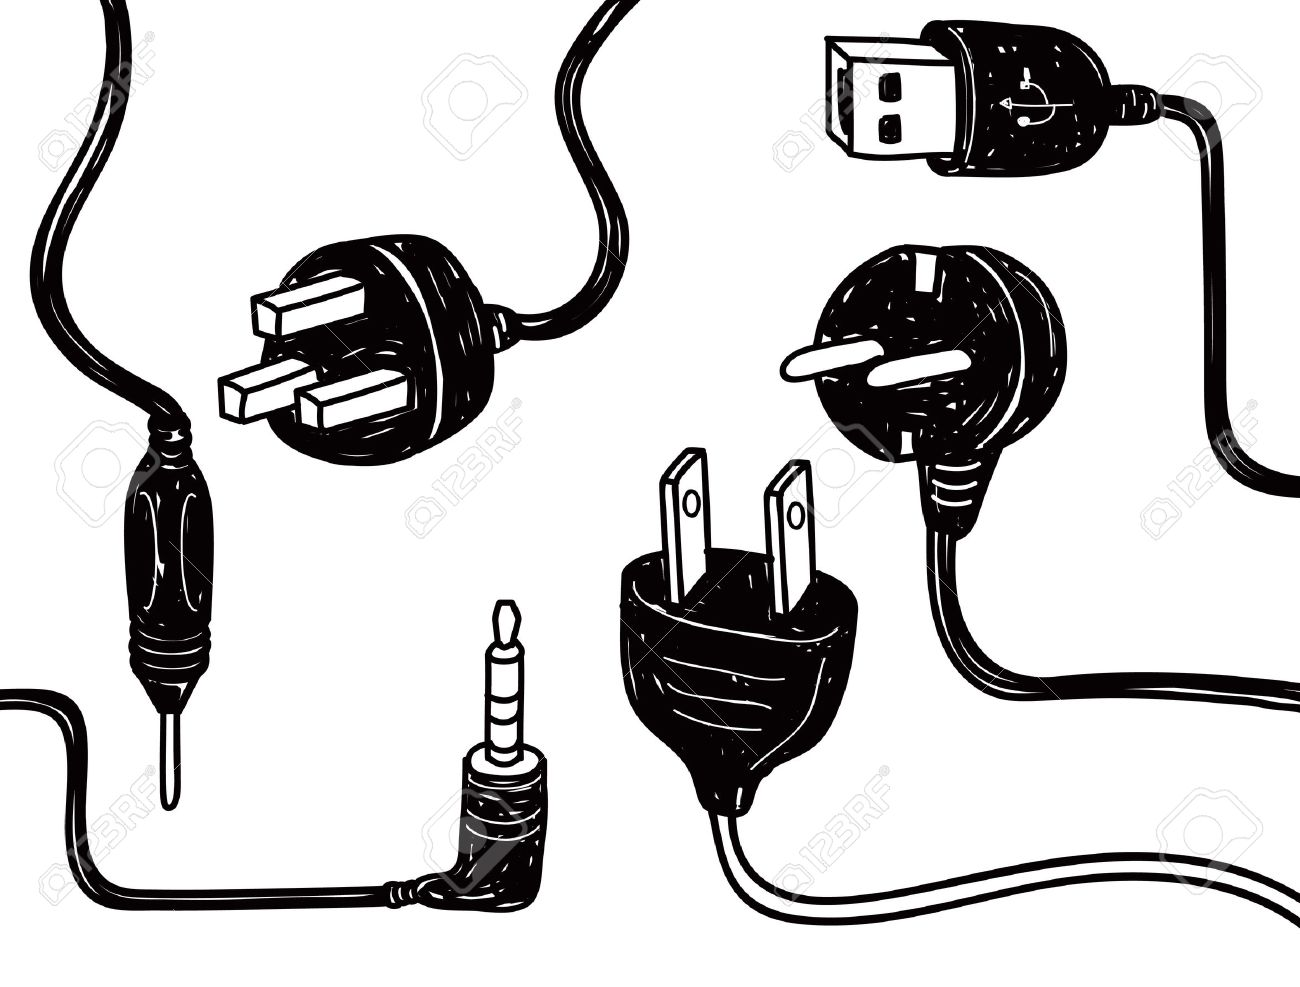 Electrical Connector Clipart Clipground